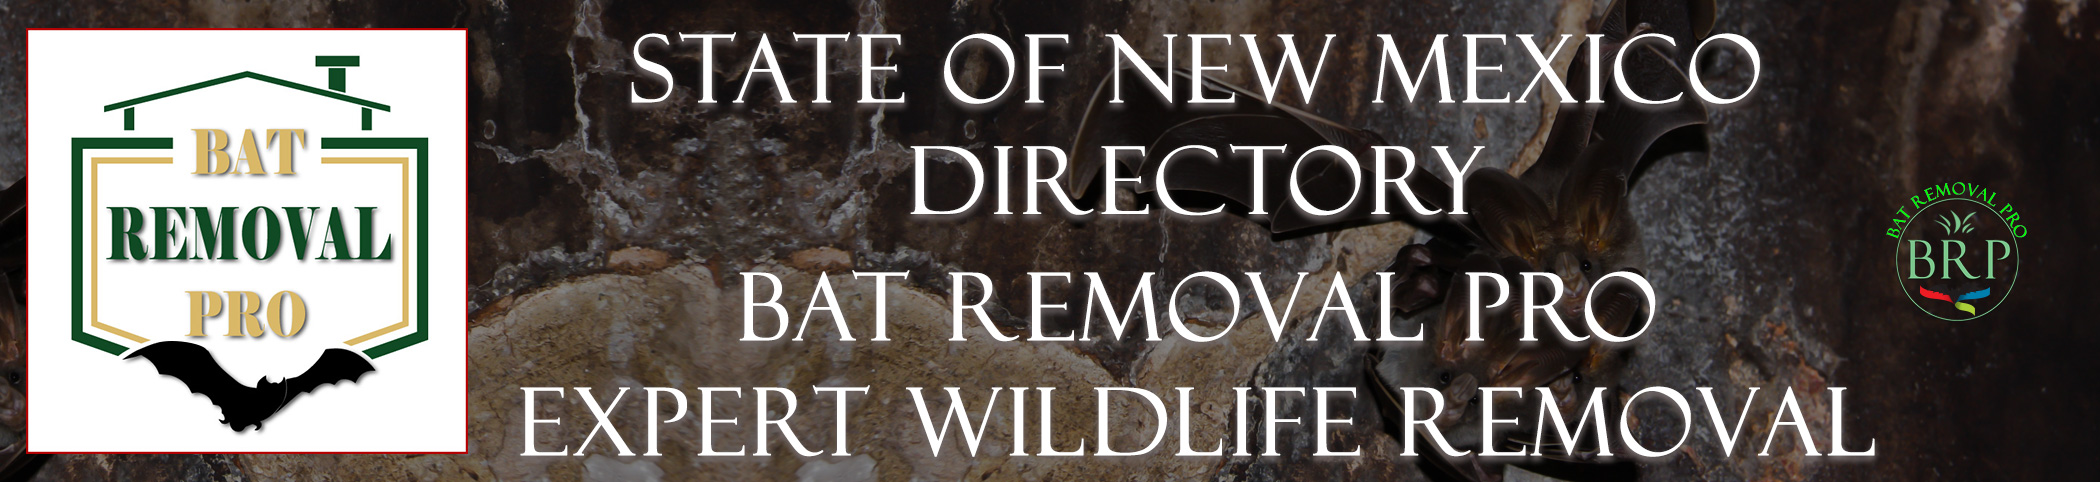 NEW-MEXICO-bat-removal-at-bat-removal-pro-header-image